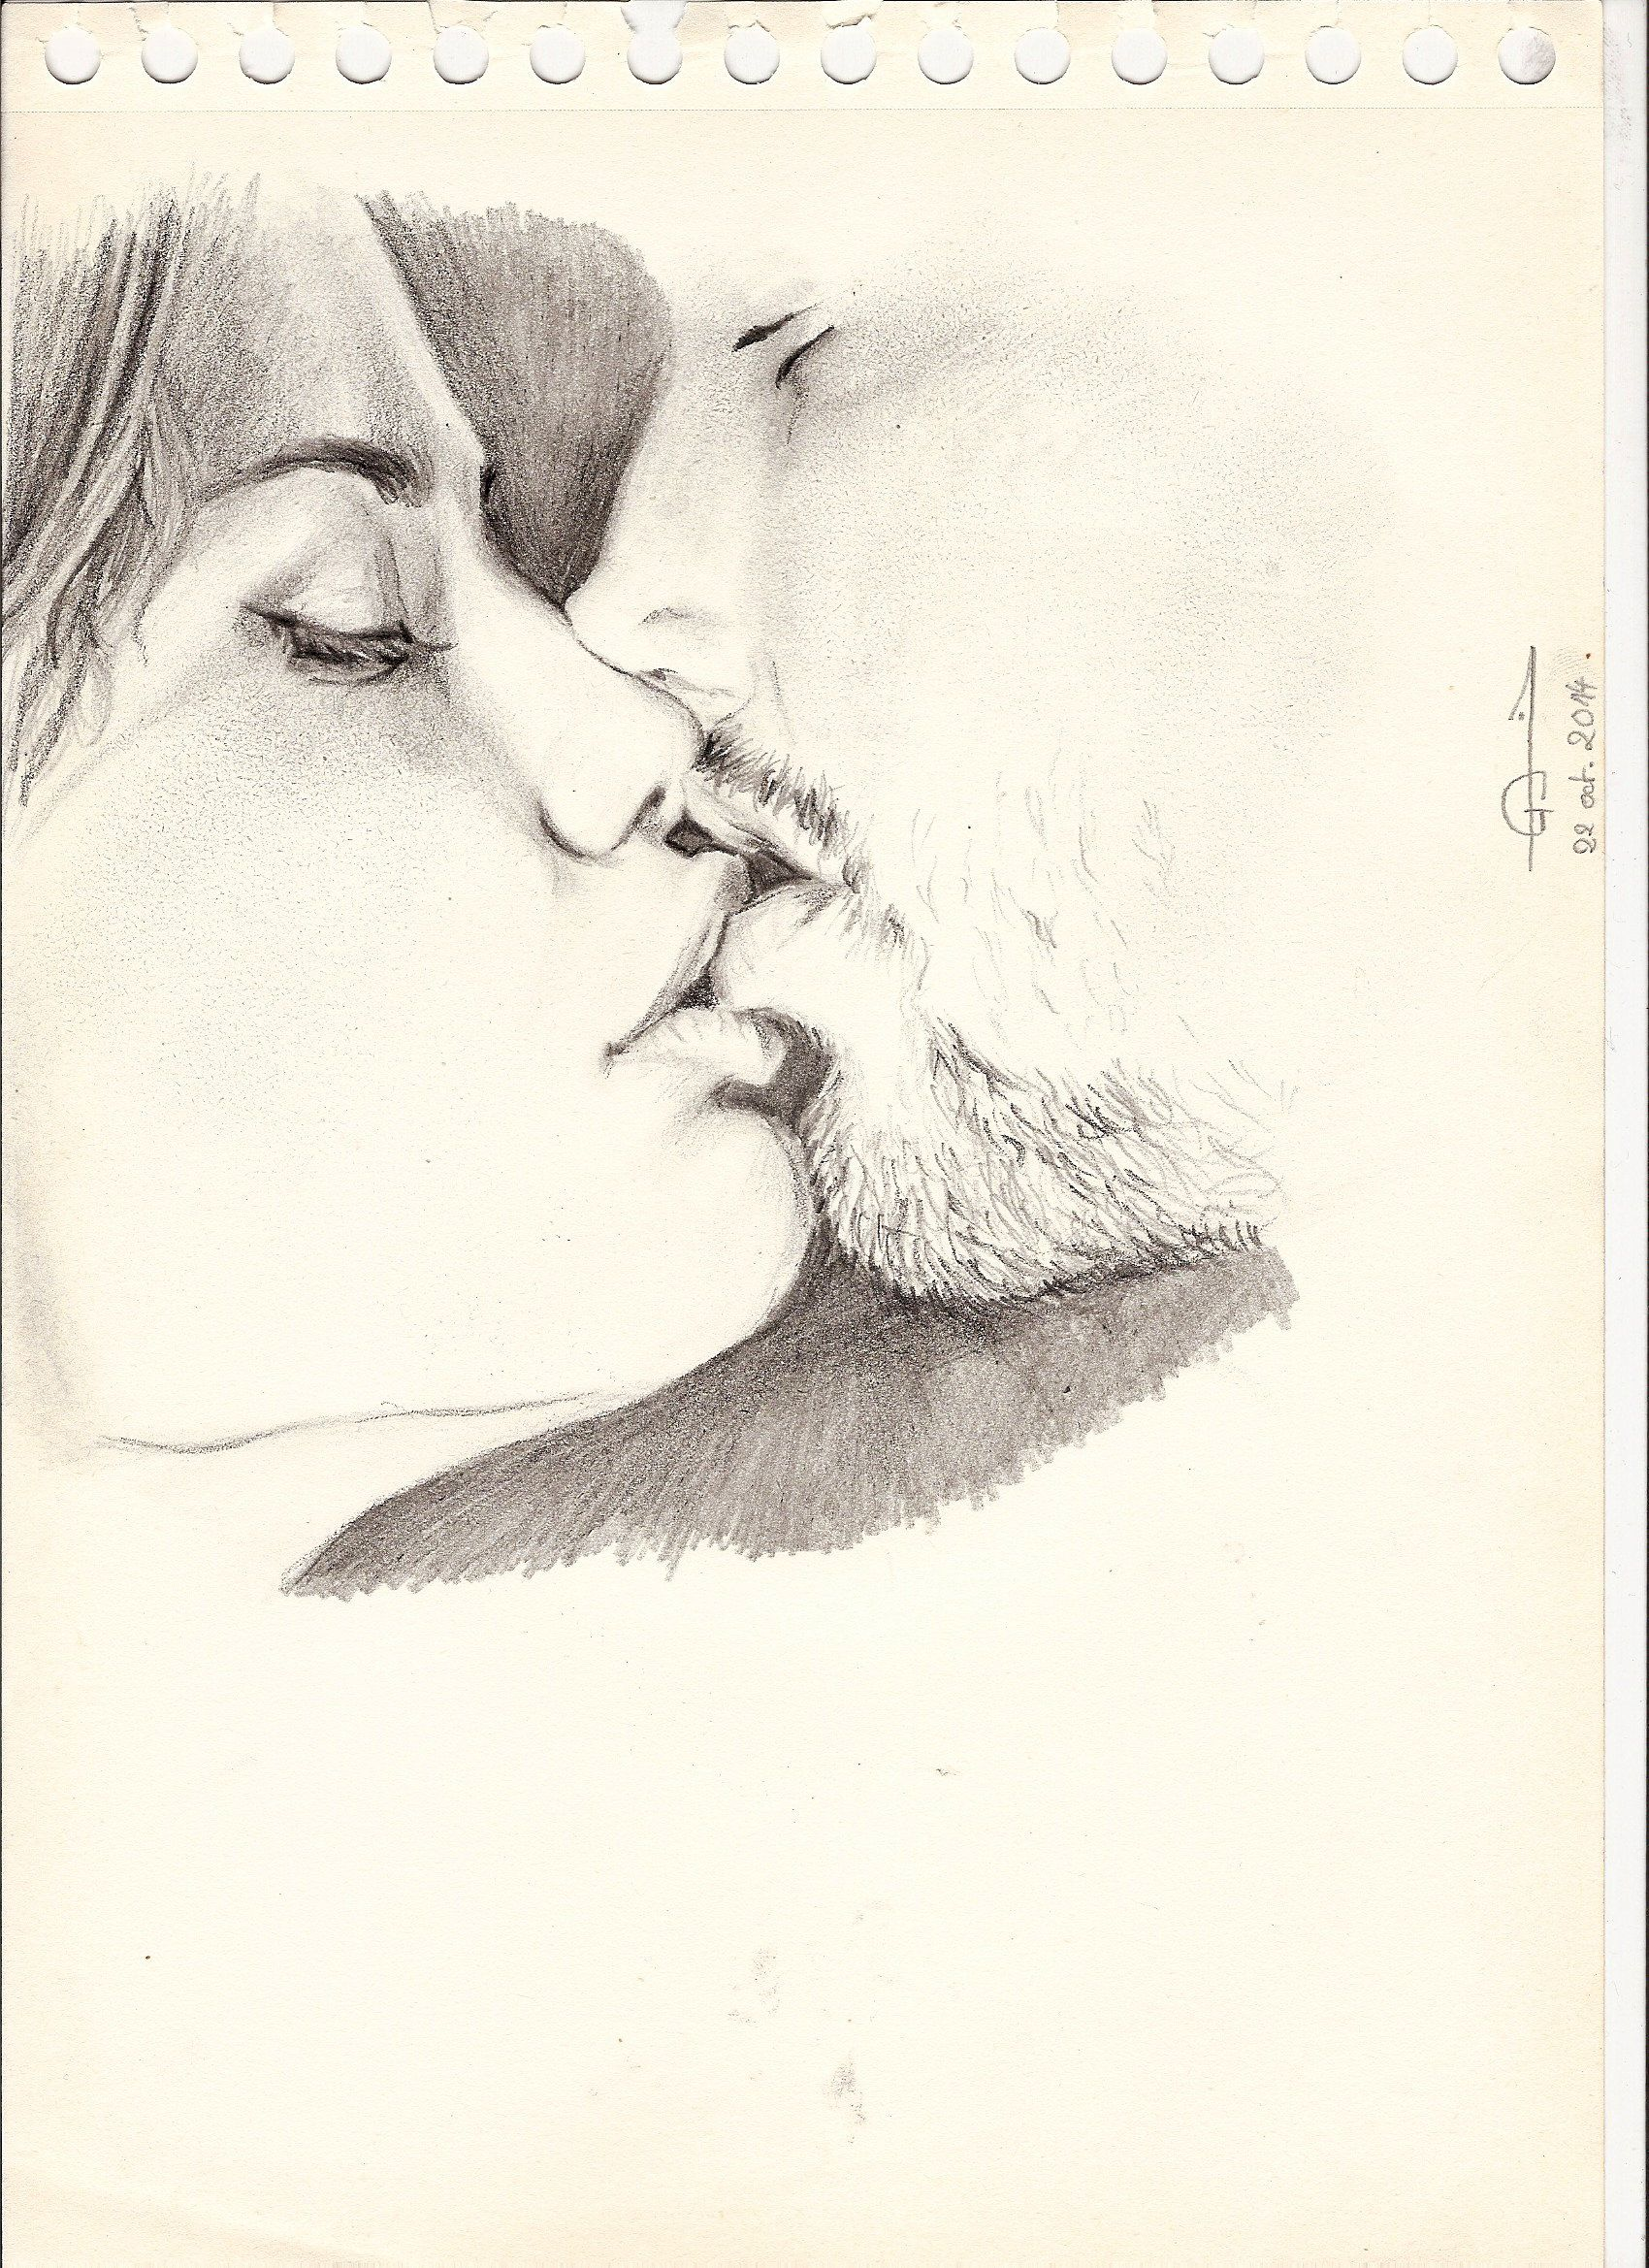 Pencils Works Of Sketch Couples Pencil Sketch